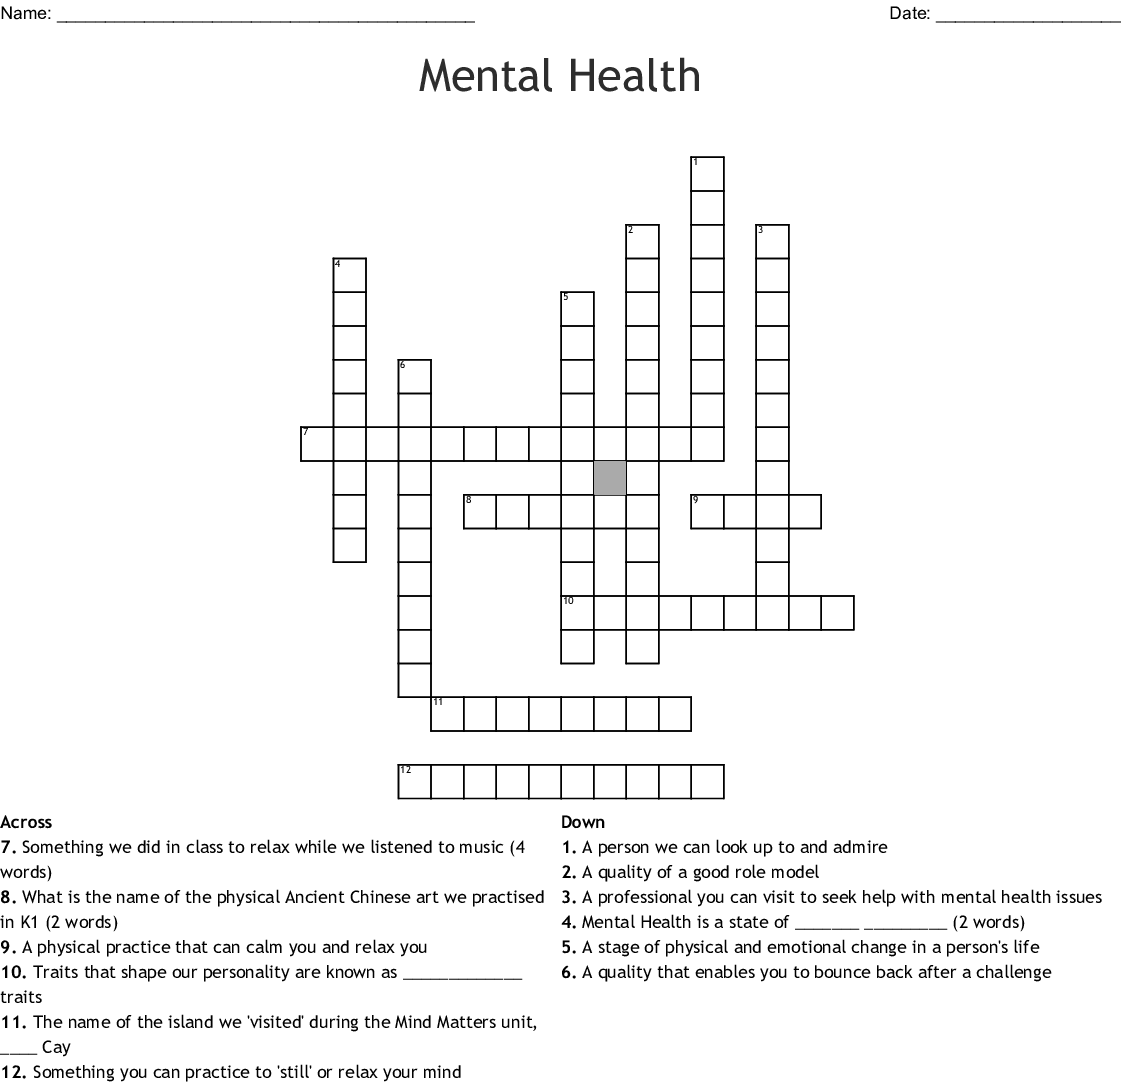 Mental Health Crossword Wordmint